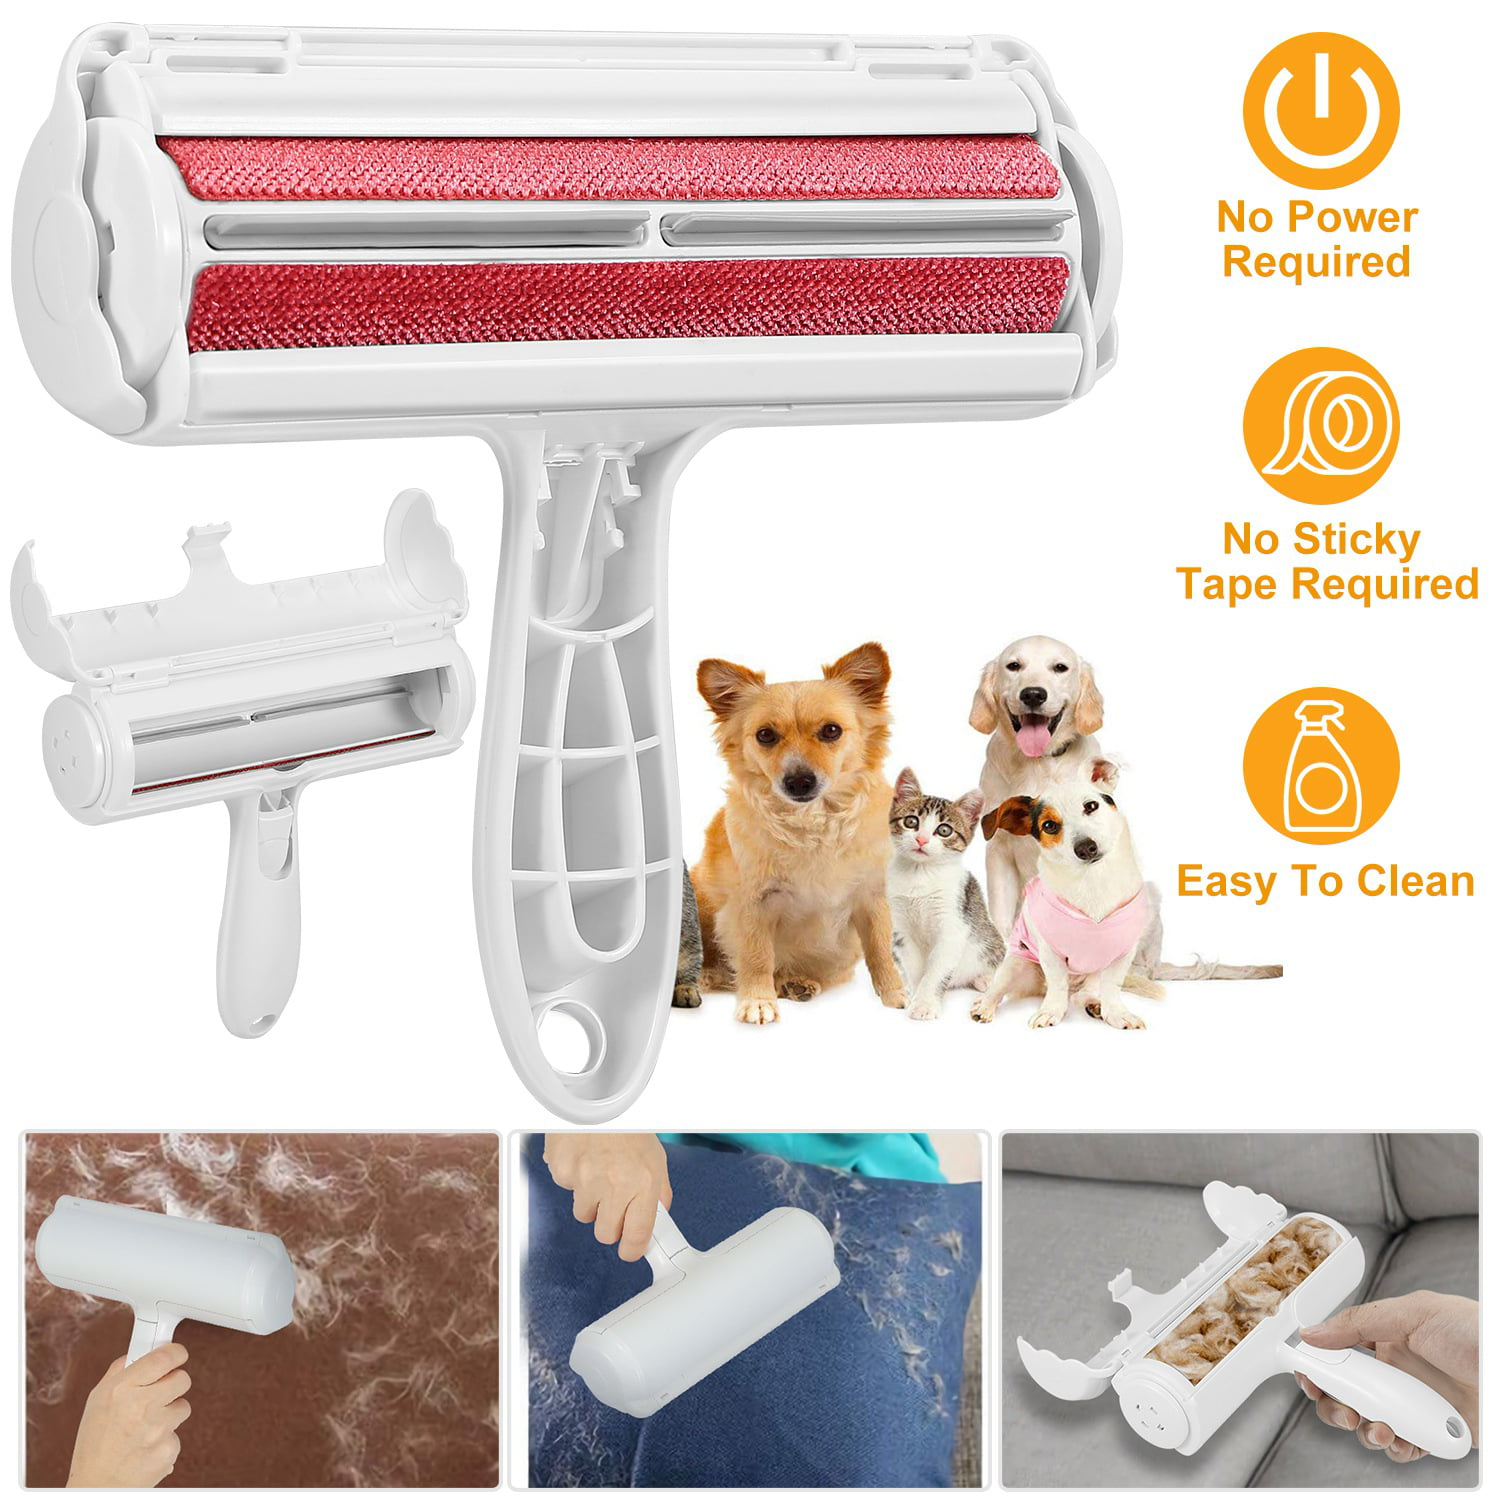 Red Pet Hair Remover Lint Roller Dog Cat Hair Cleaning Brush Removing Dog Cat Hair for Furniture Carpets Clothing Self-Cleaning Reusable Red